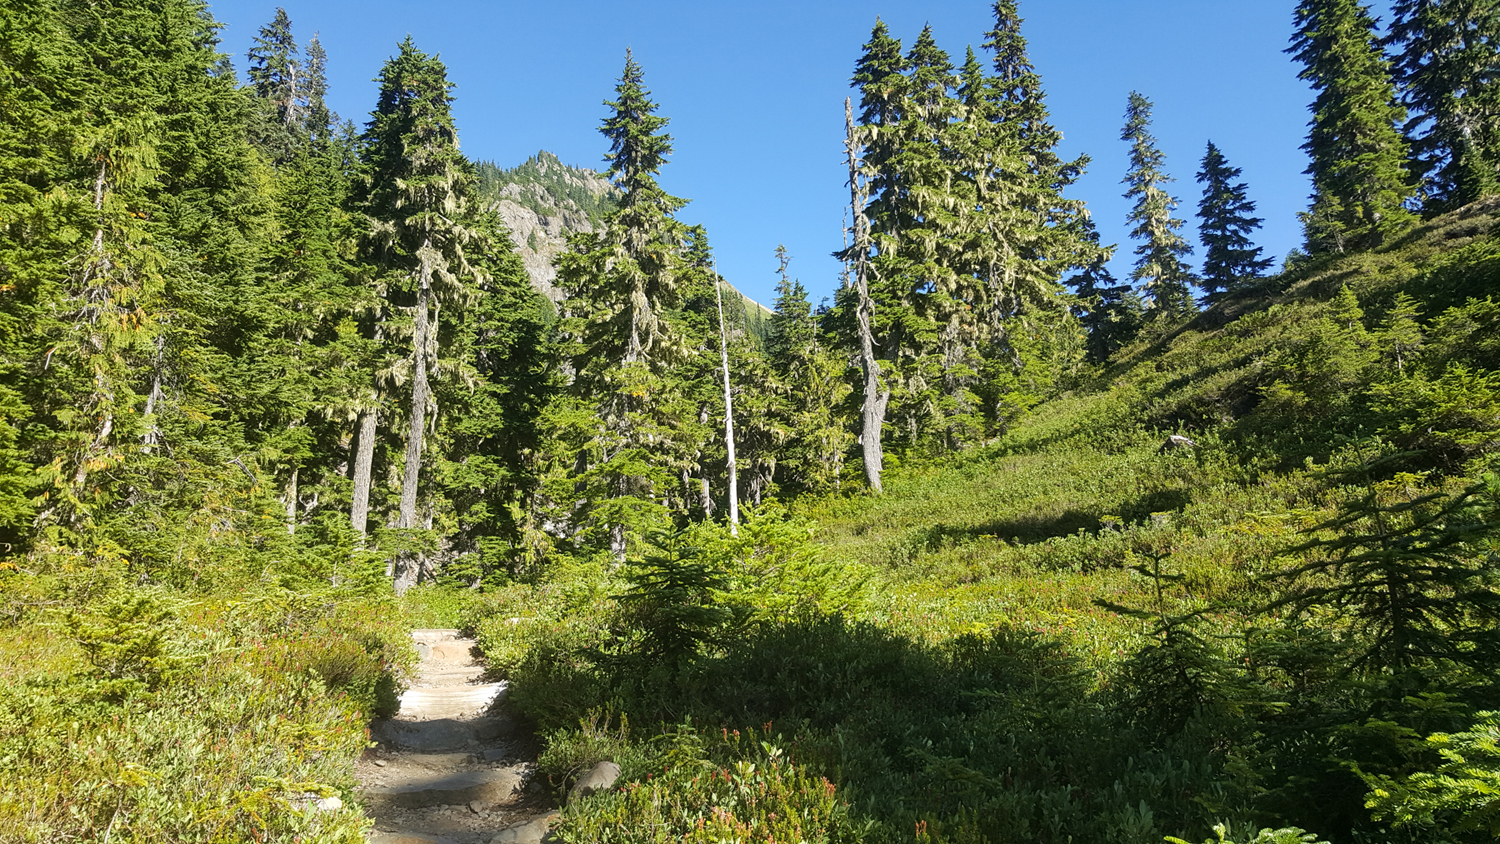 Wasim Muklashy Photography_Olympic National Park_High Divide Loop_113.jpg